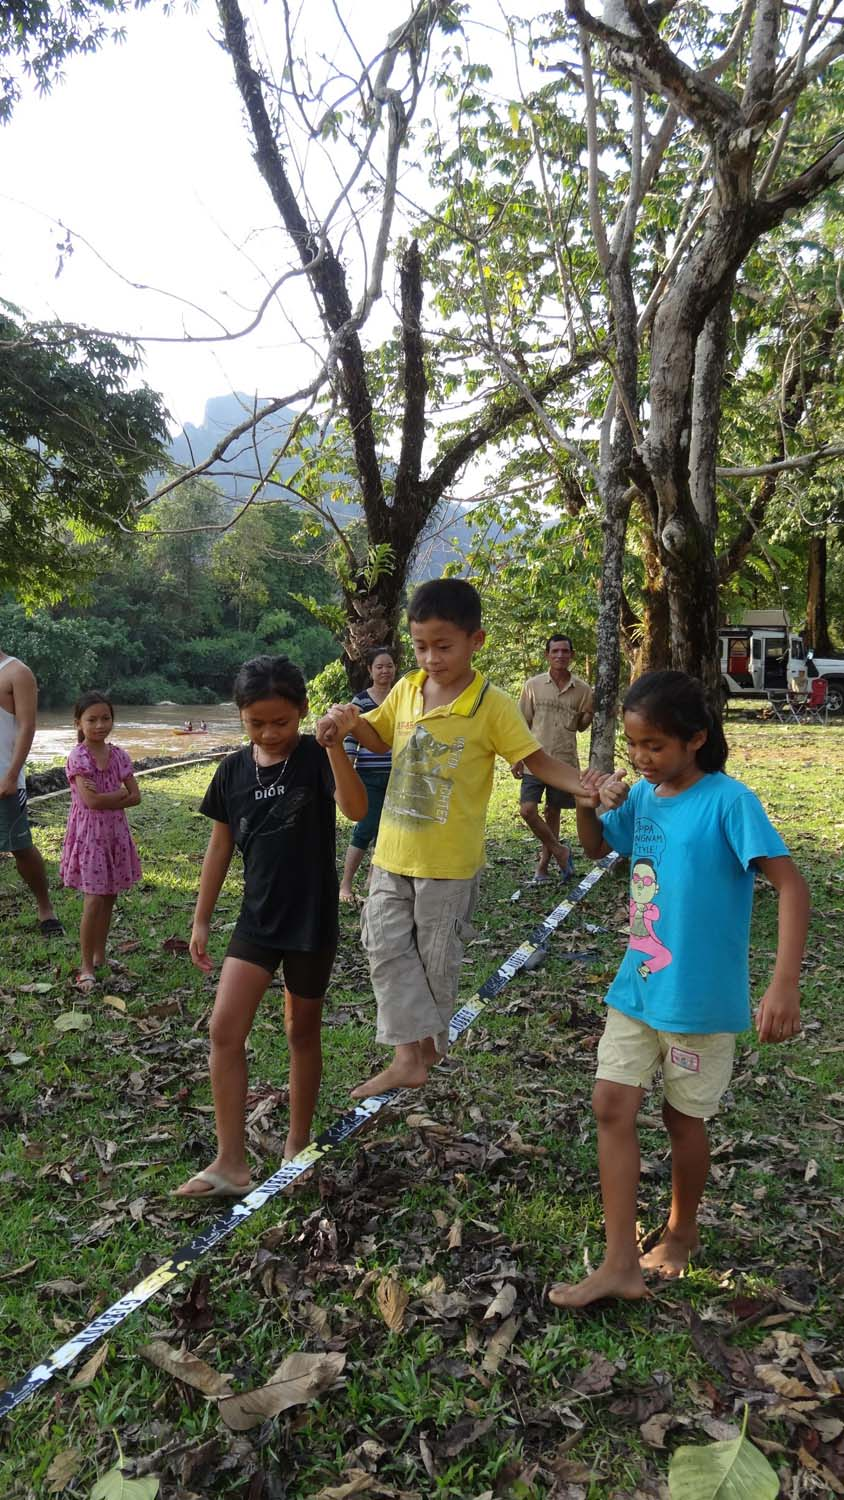 local kids had a lot of fun trying the slackline